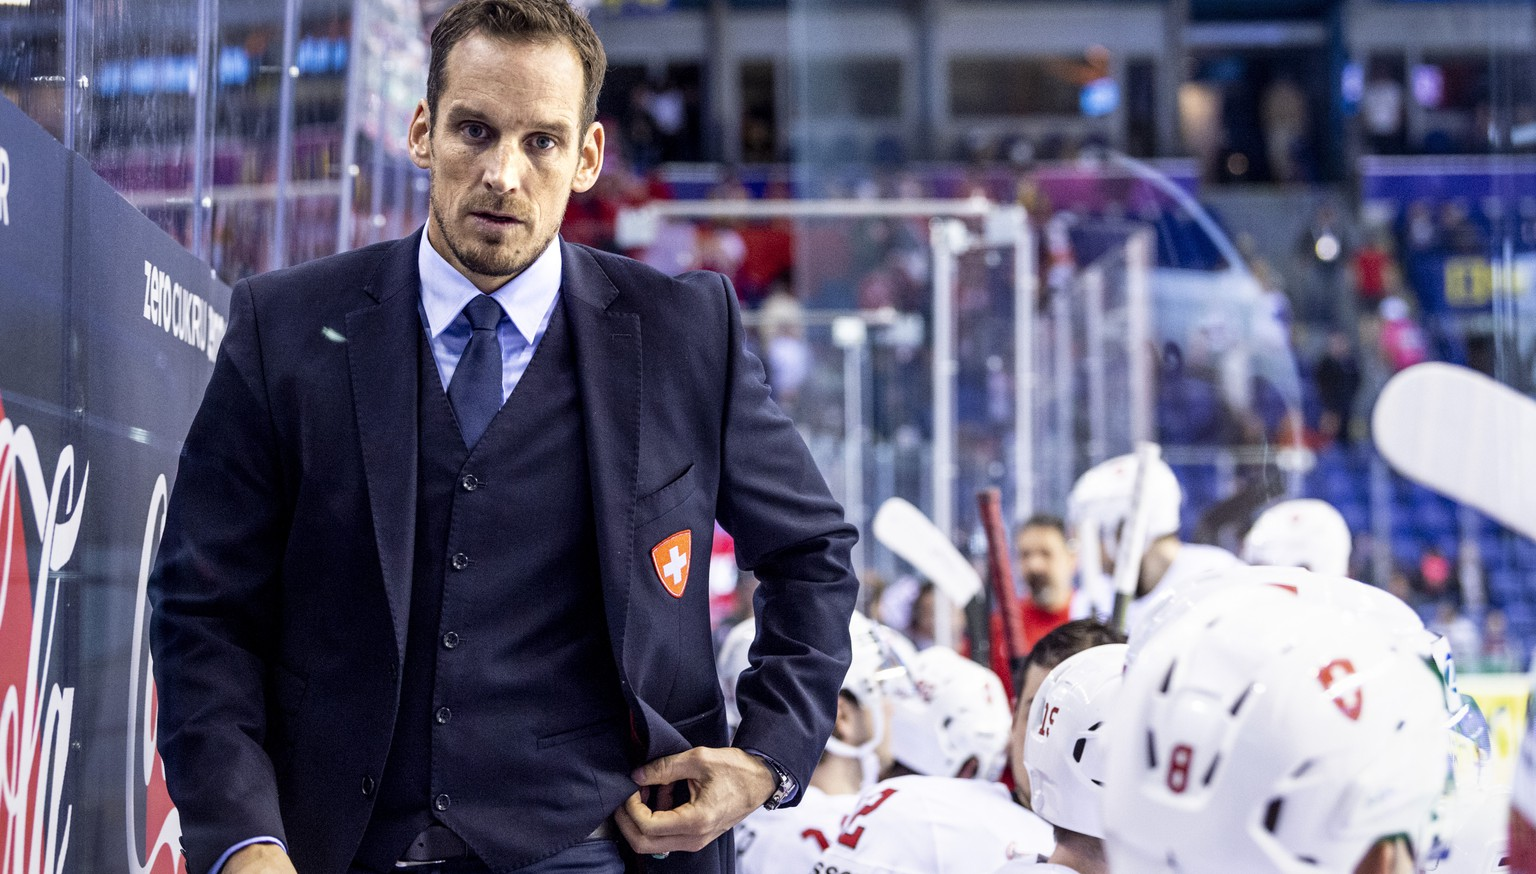 Switzerland`s coach Patrick Fischer during the semi final game between Canada and Switzerland, at the IIHF 2019 World Ice Hockey Championships, at the Steel Arena in Kosice, Slovakia, on Thursday, May 23, 2019. (KEYSTONE/Melanie Duchene)